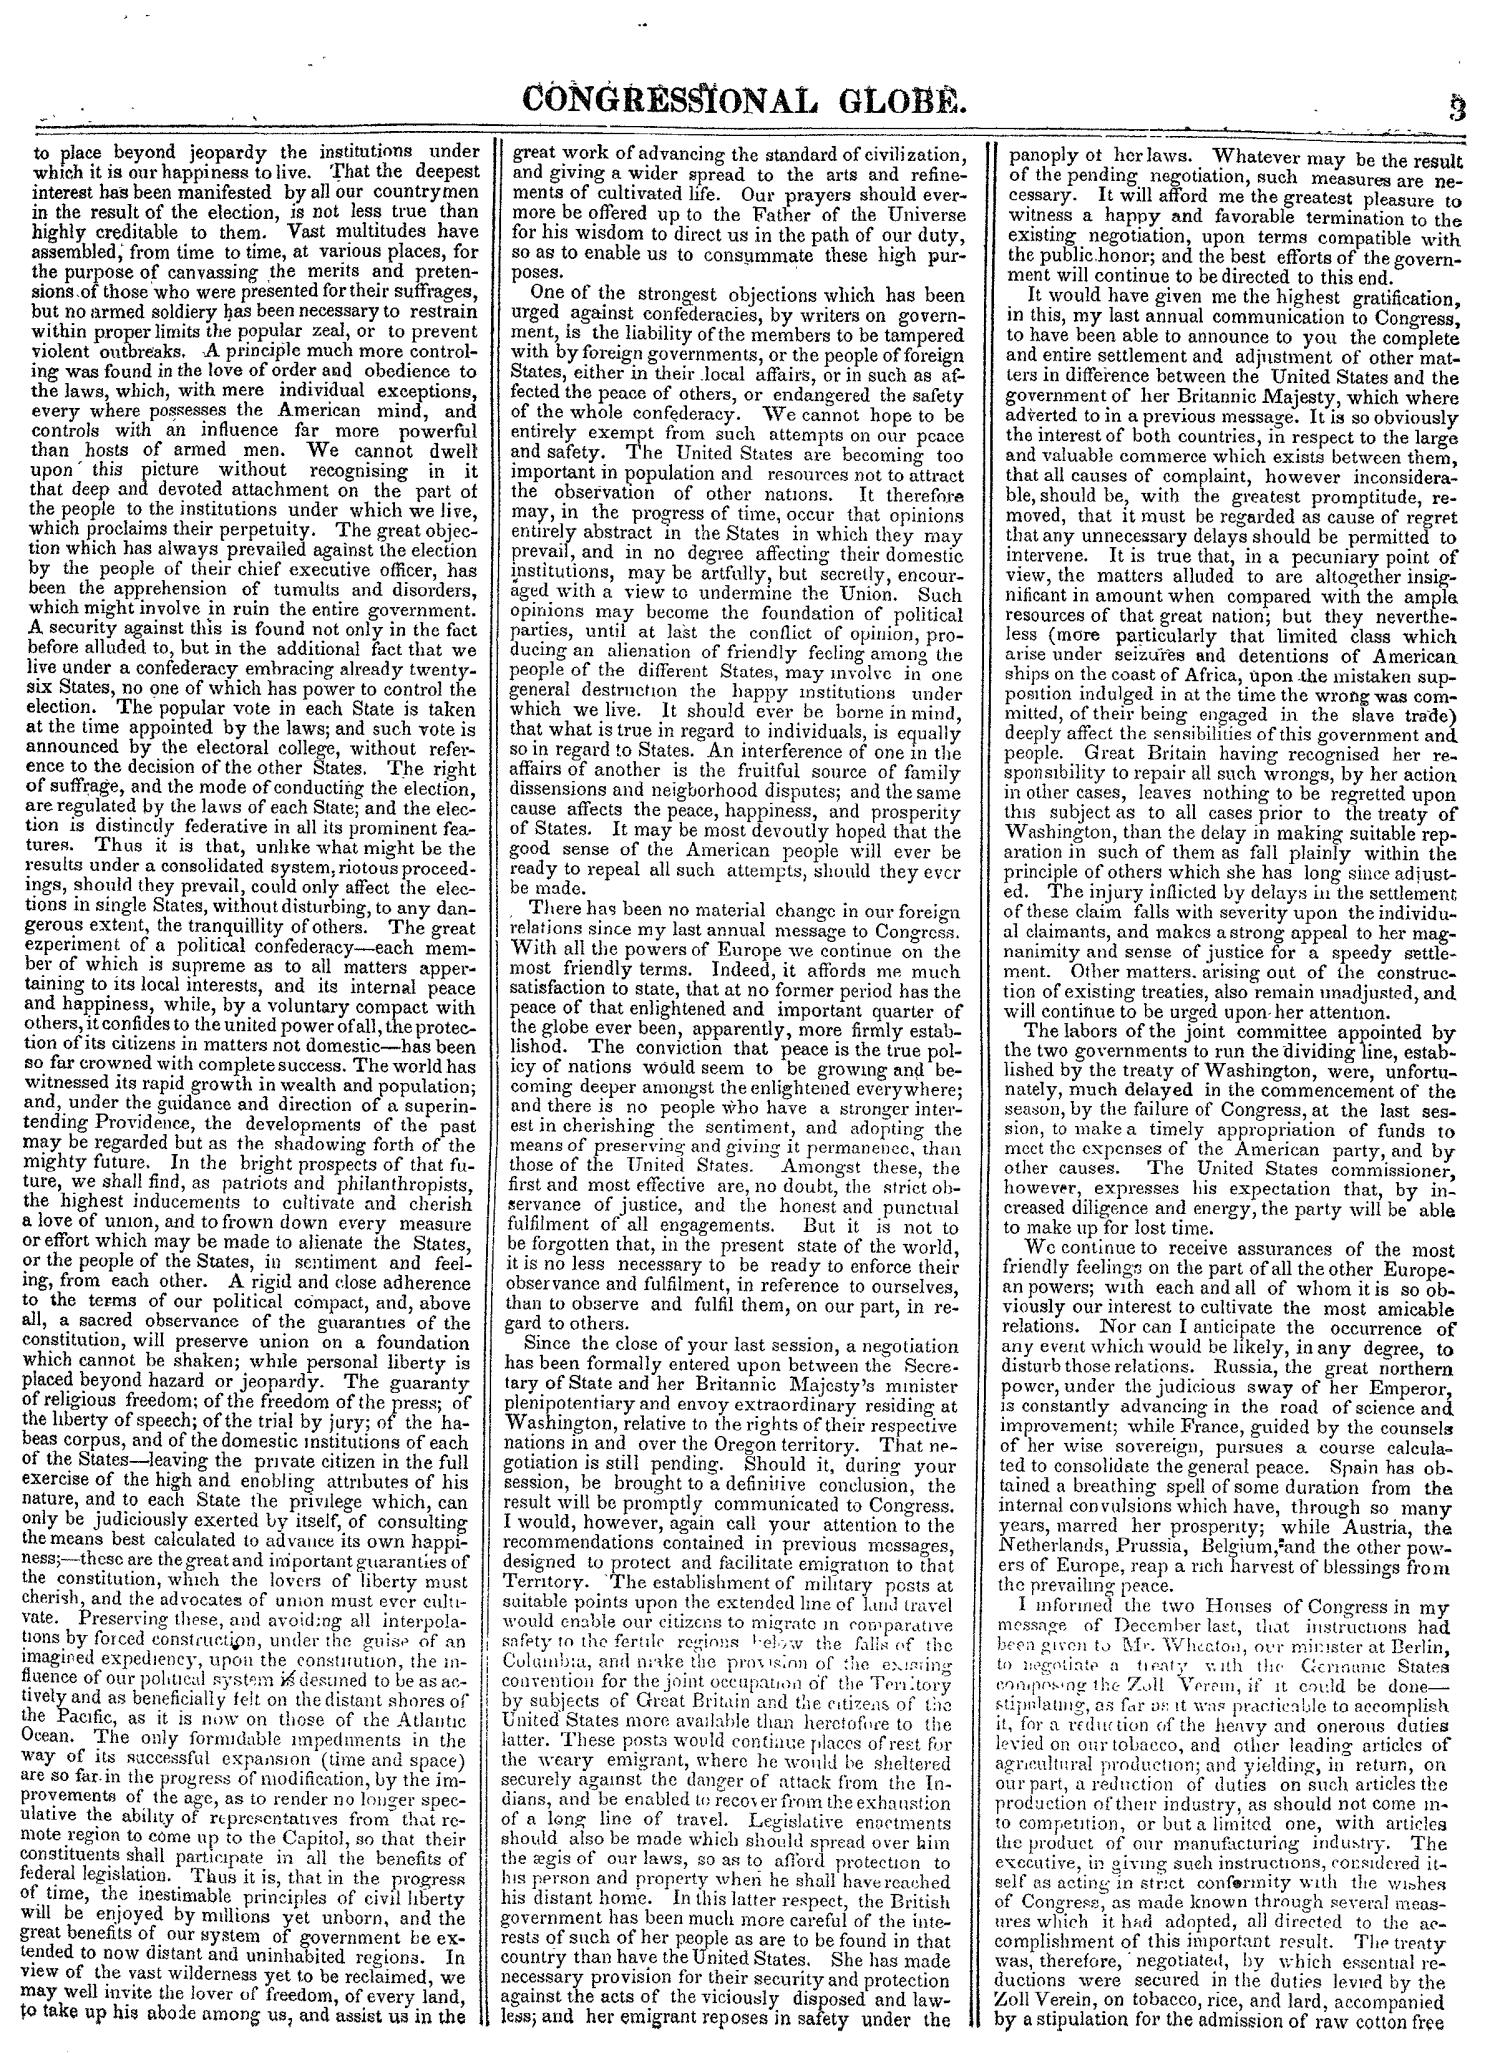 The Congressional Globe, Volume 14: Twenty-Eighth Congress, Second Session                                                                                                      3